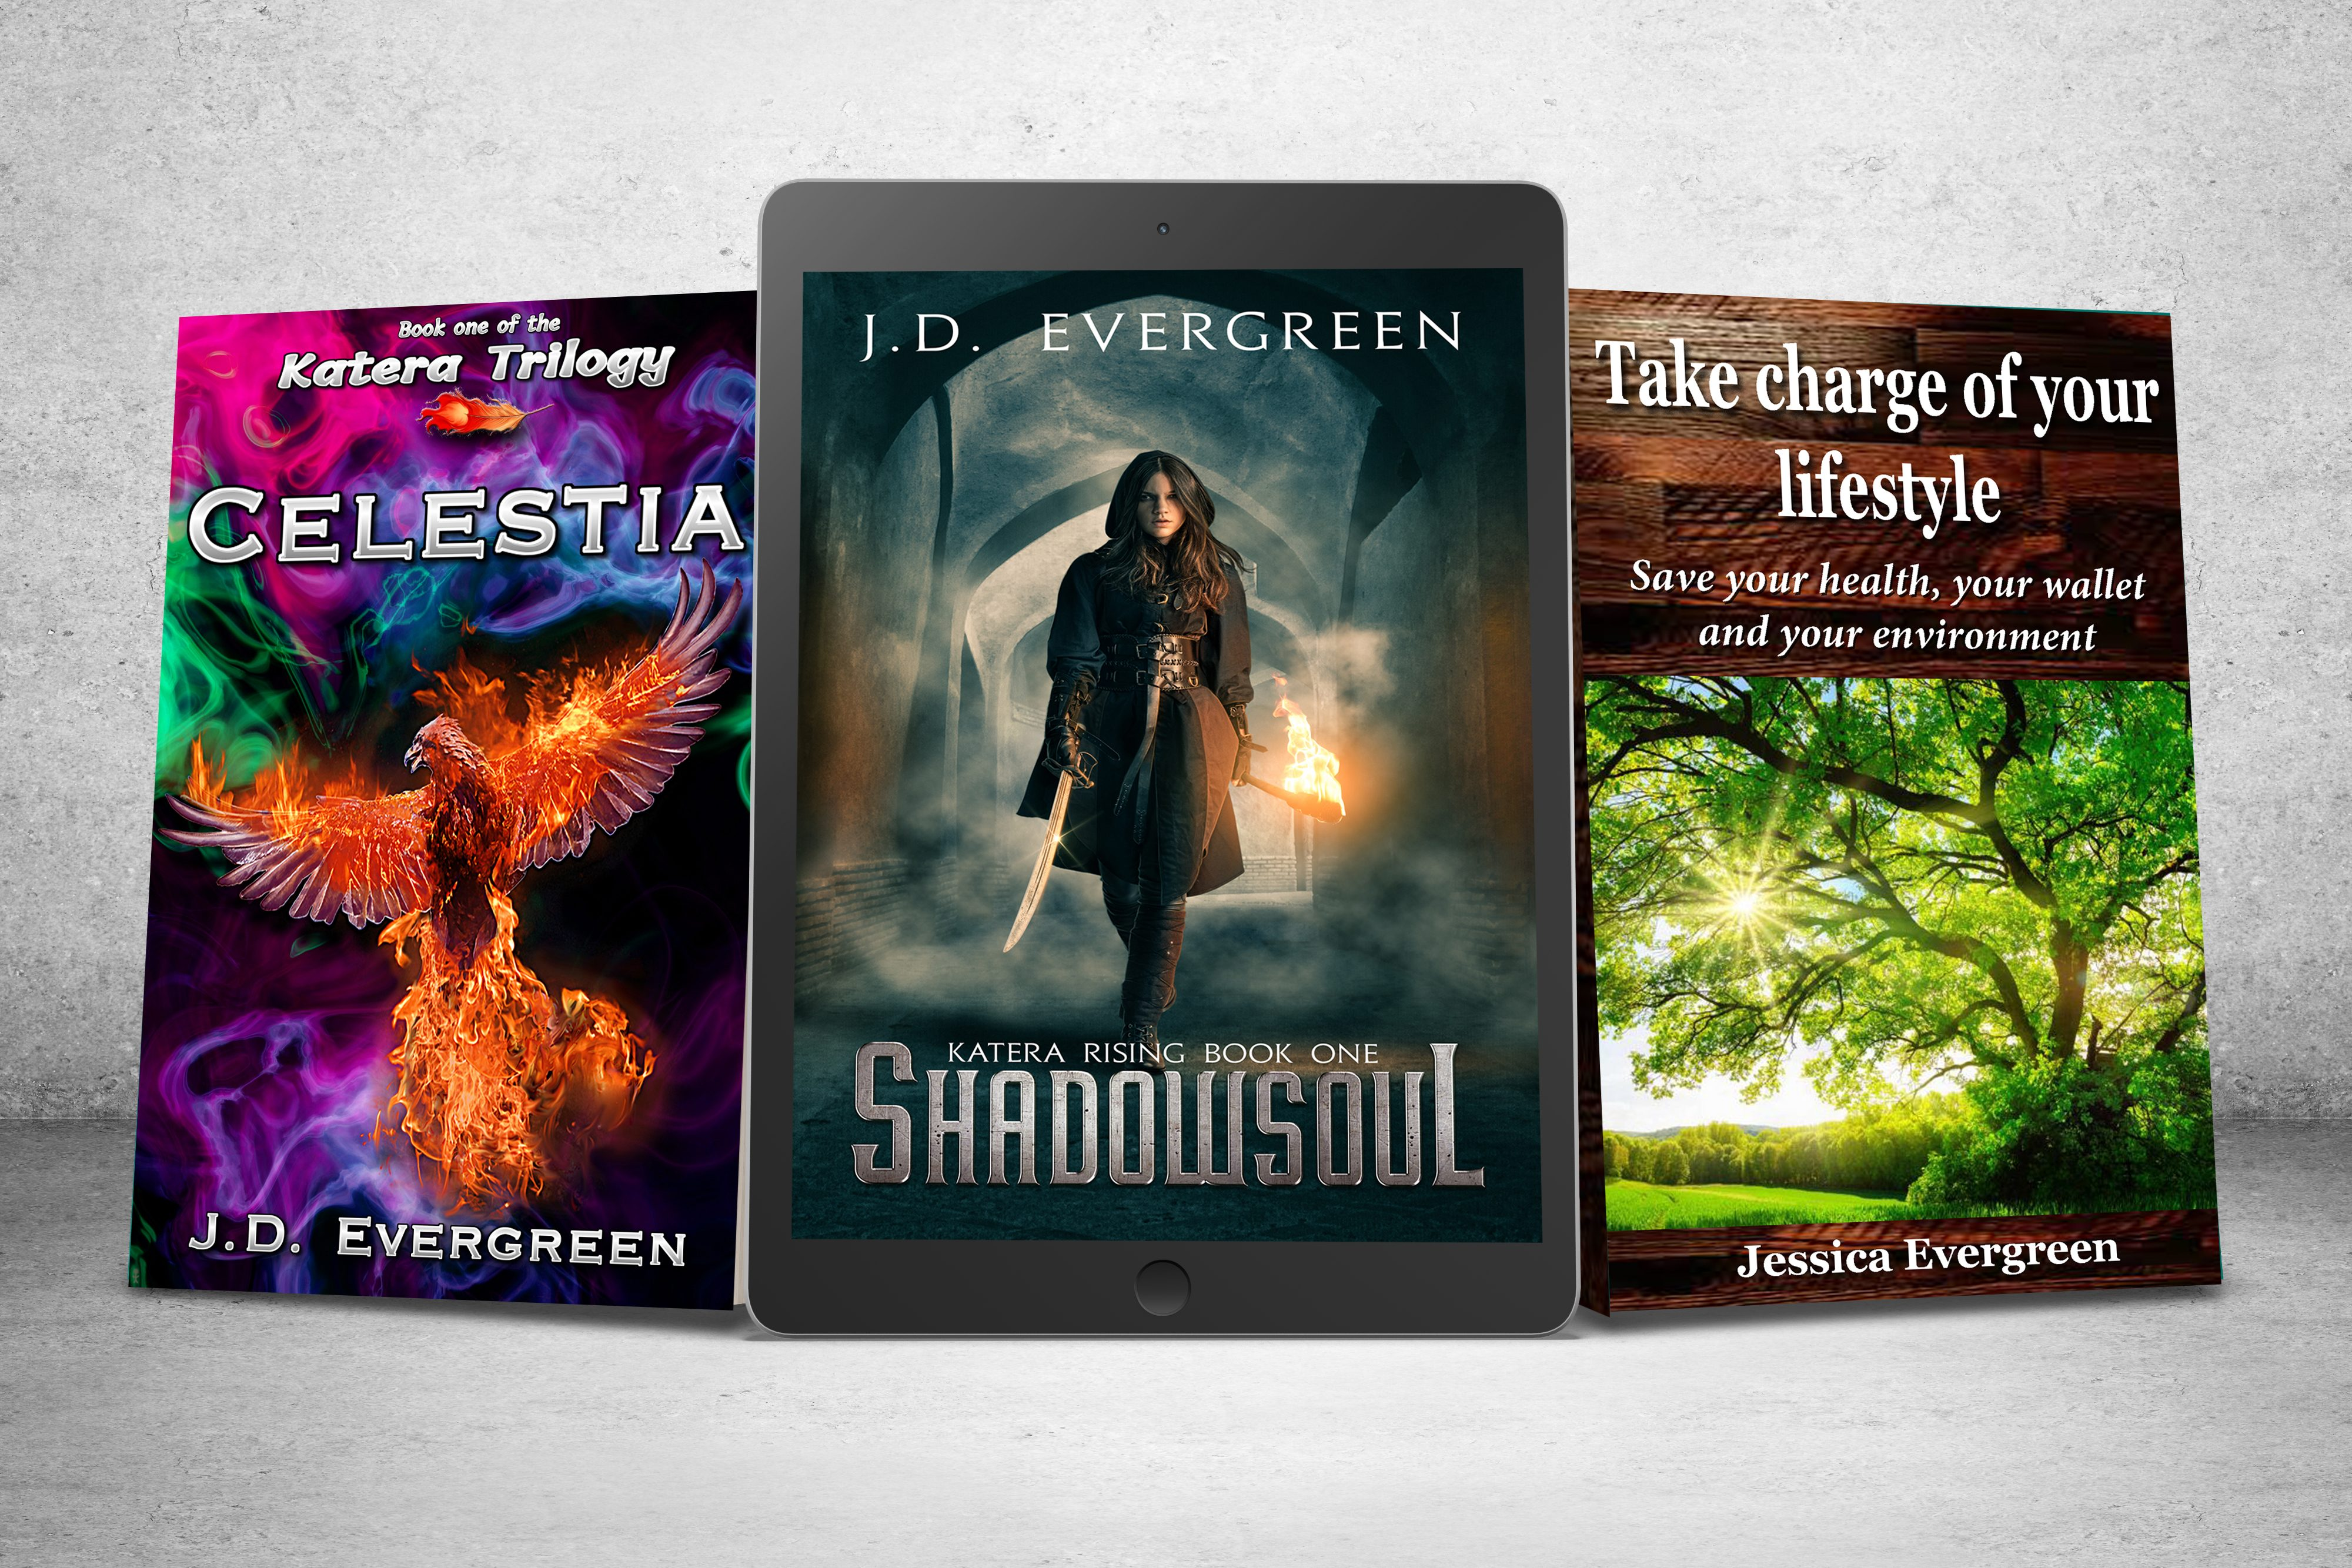 Books by J.D.Evergreen